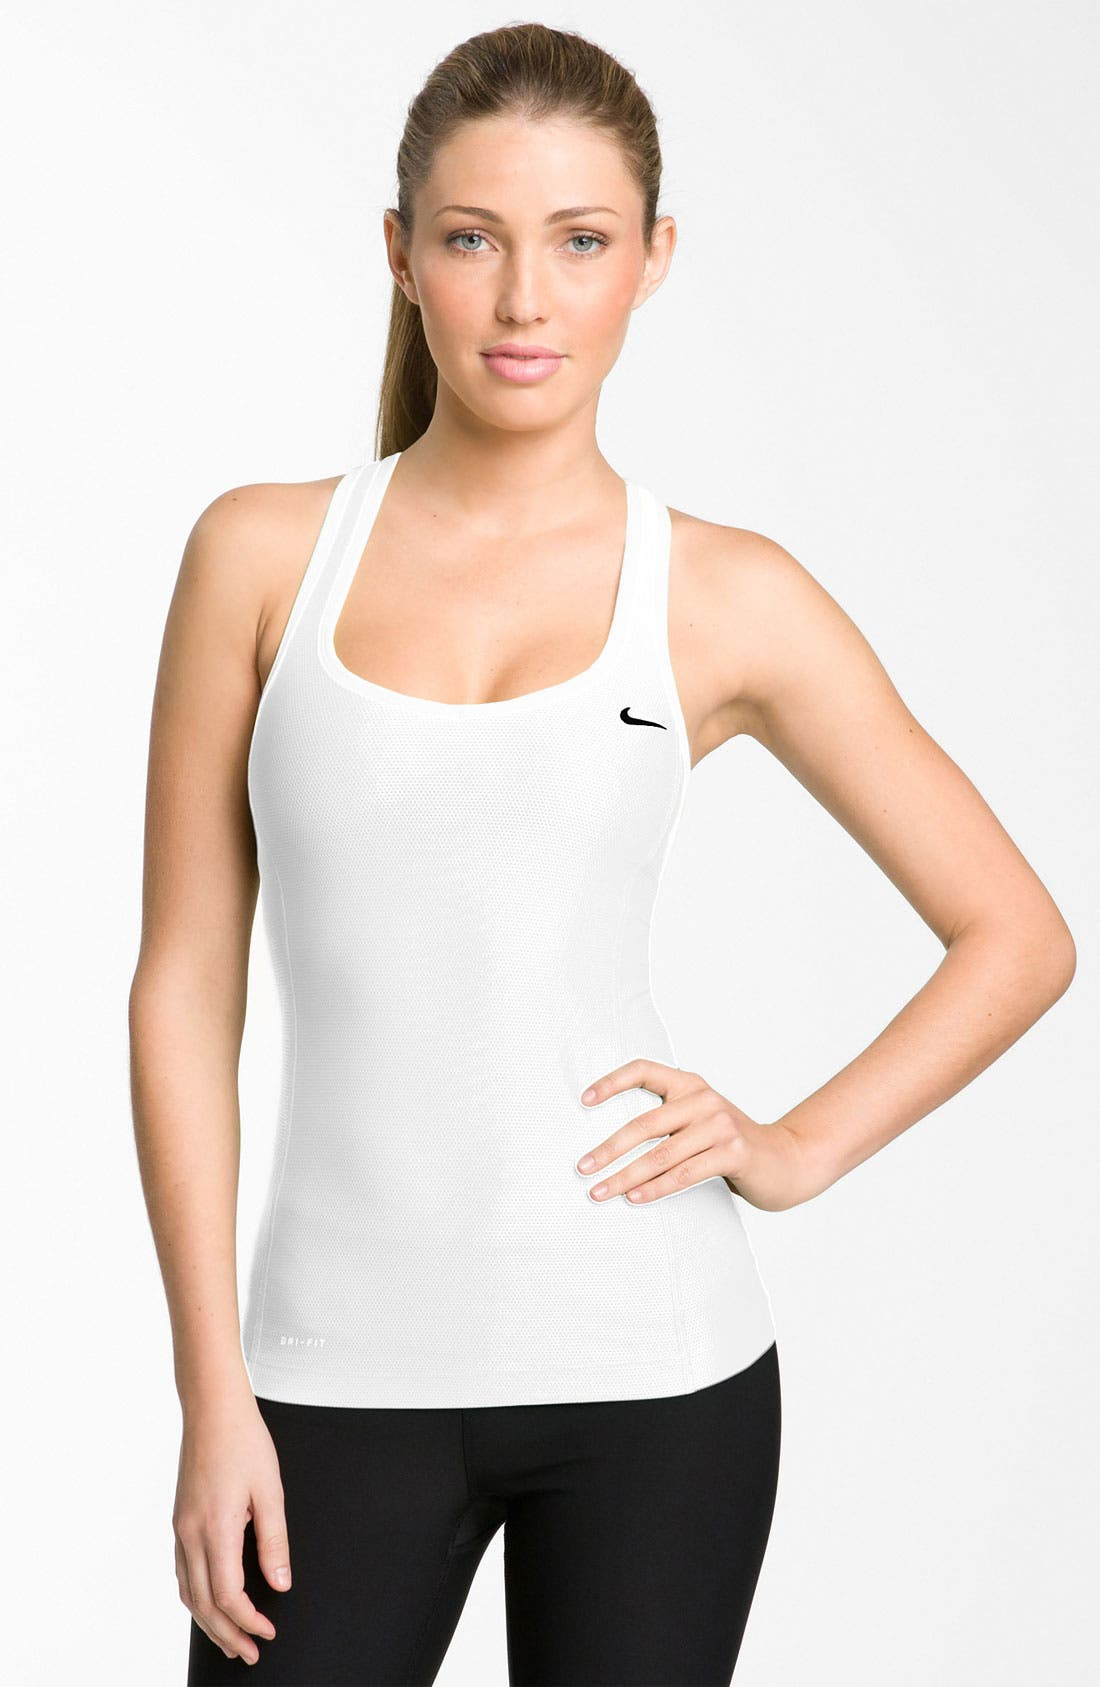 Alternate Image 1 Selected - Nike 'Victory' Long Bra Top